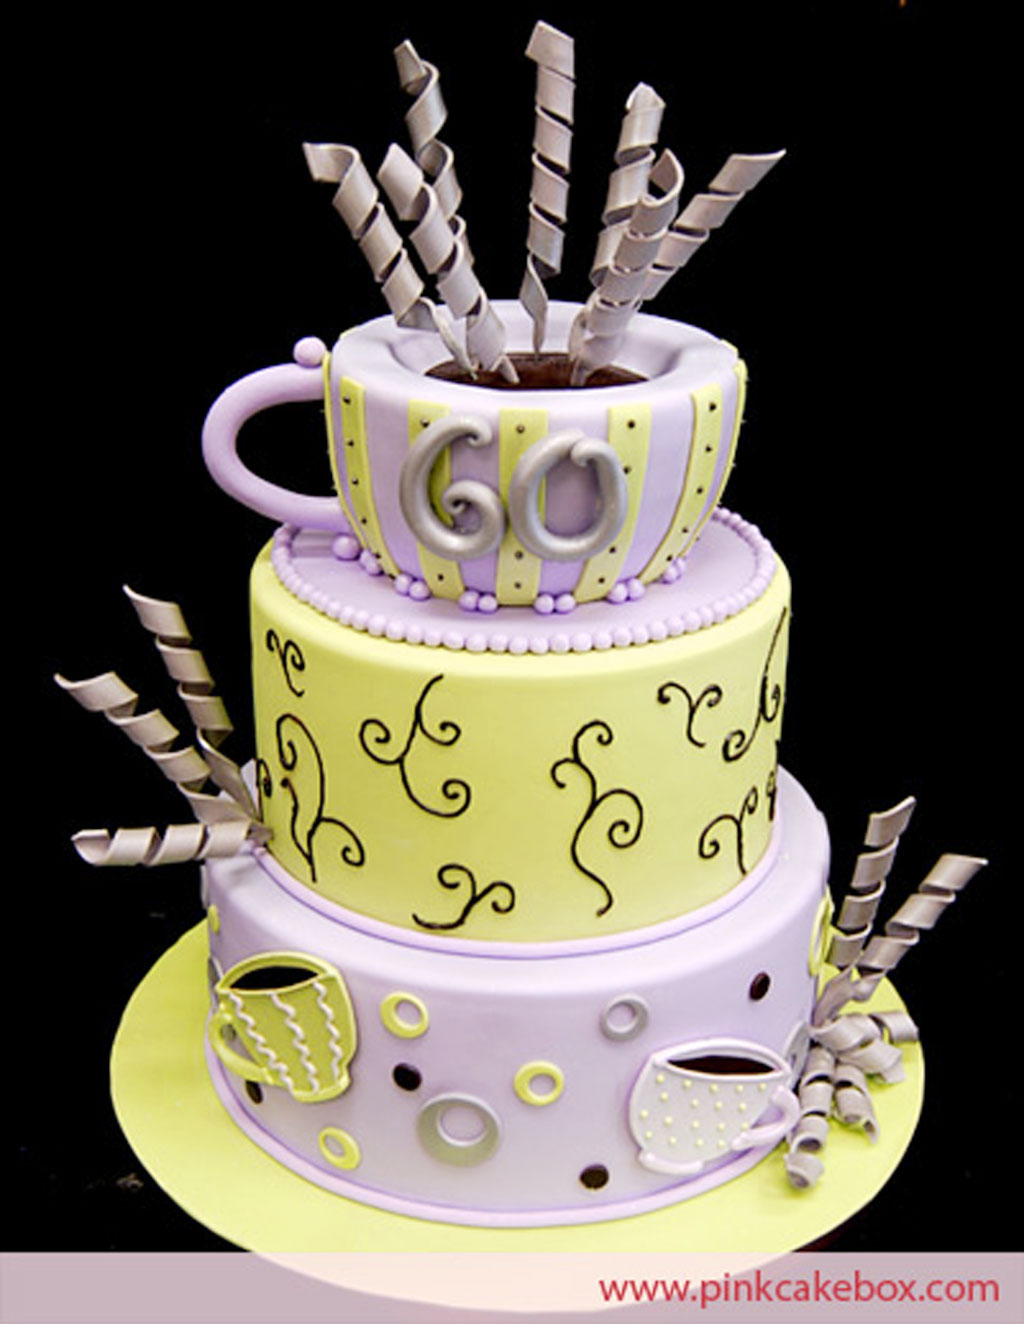 60th birthday cake ideas for women birthday cake cake for 60th birthday cake decoration